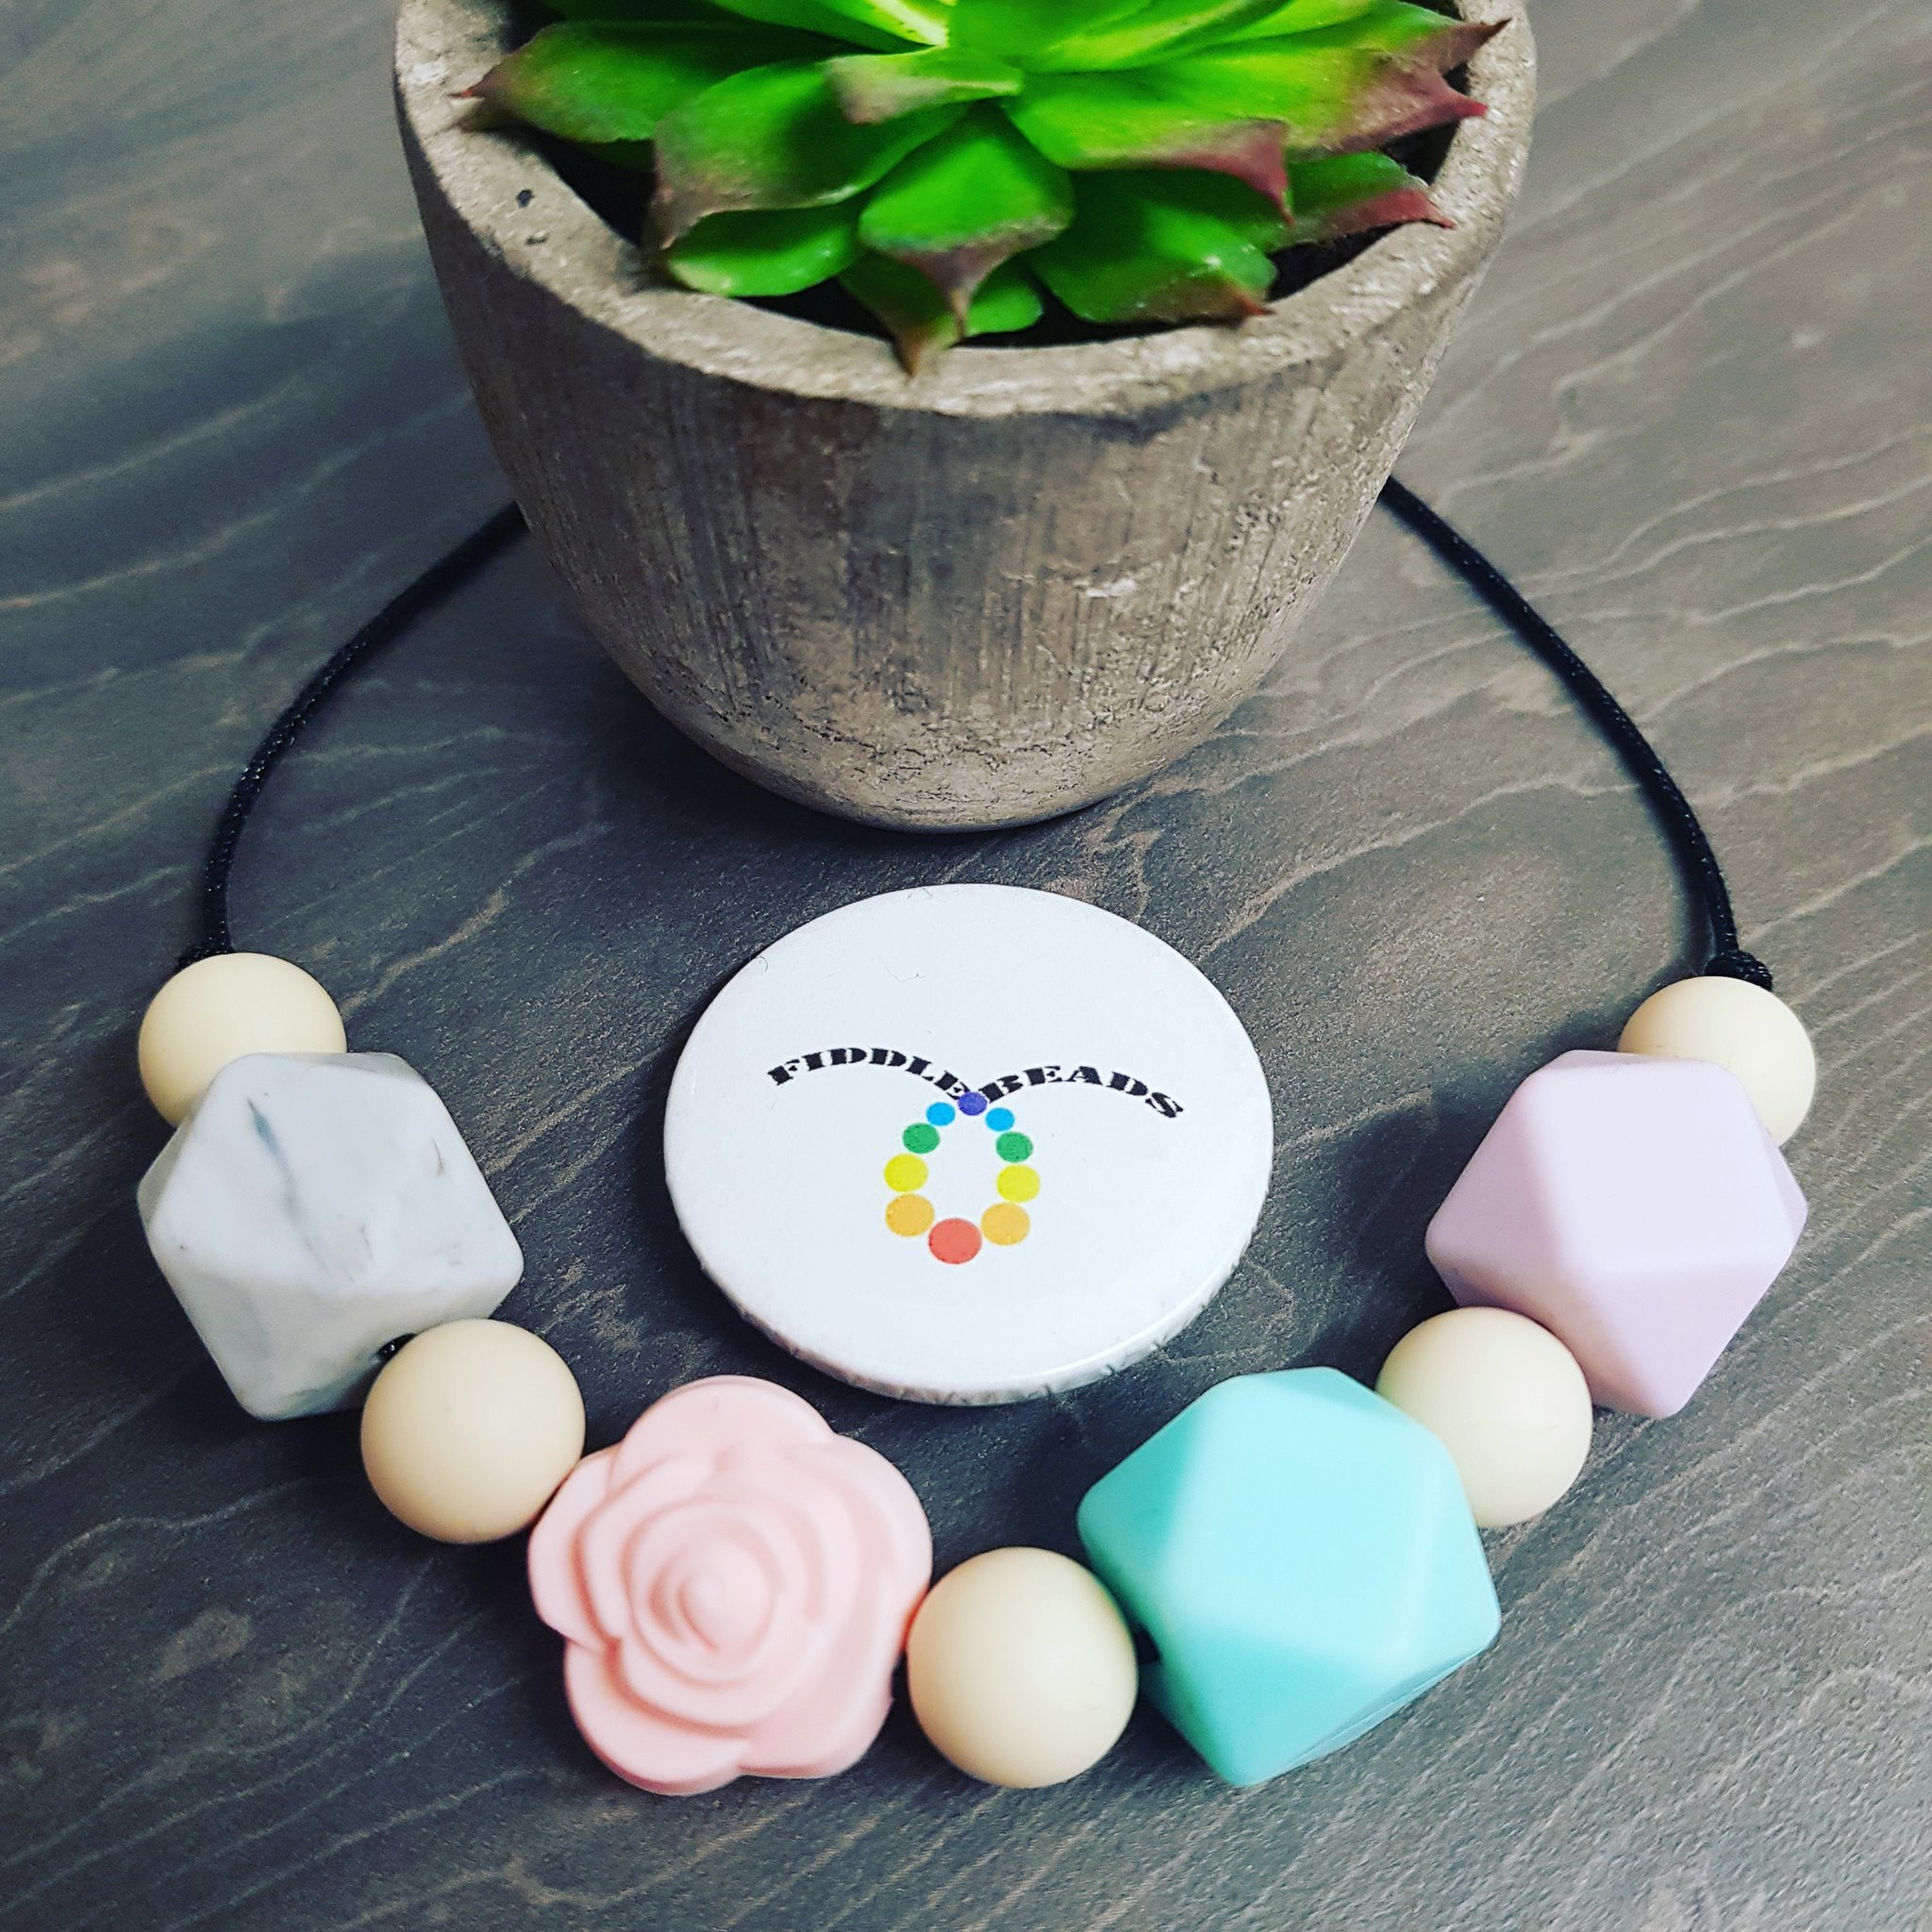 Pastel coloured fiddle necklace with silicone geometric shape beads, separated by small wooden balls, including a signature rose bead. Made using hemp cord. Commonly used when breastfeeding and babywearing, brilliant for teething babies